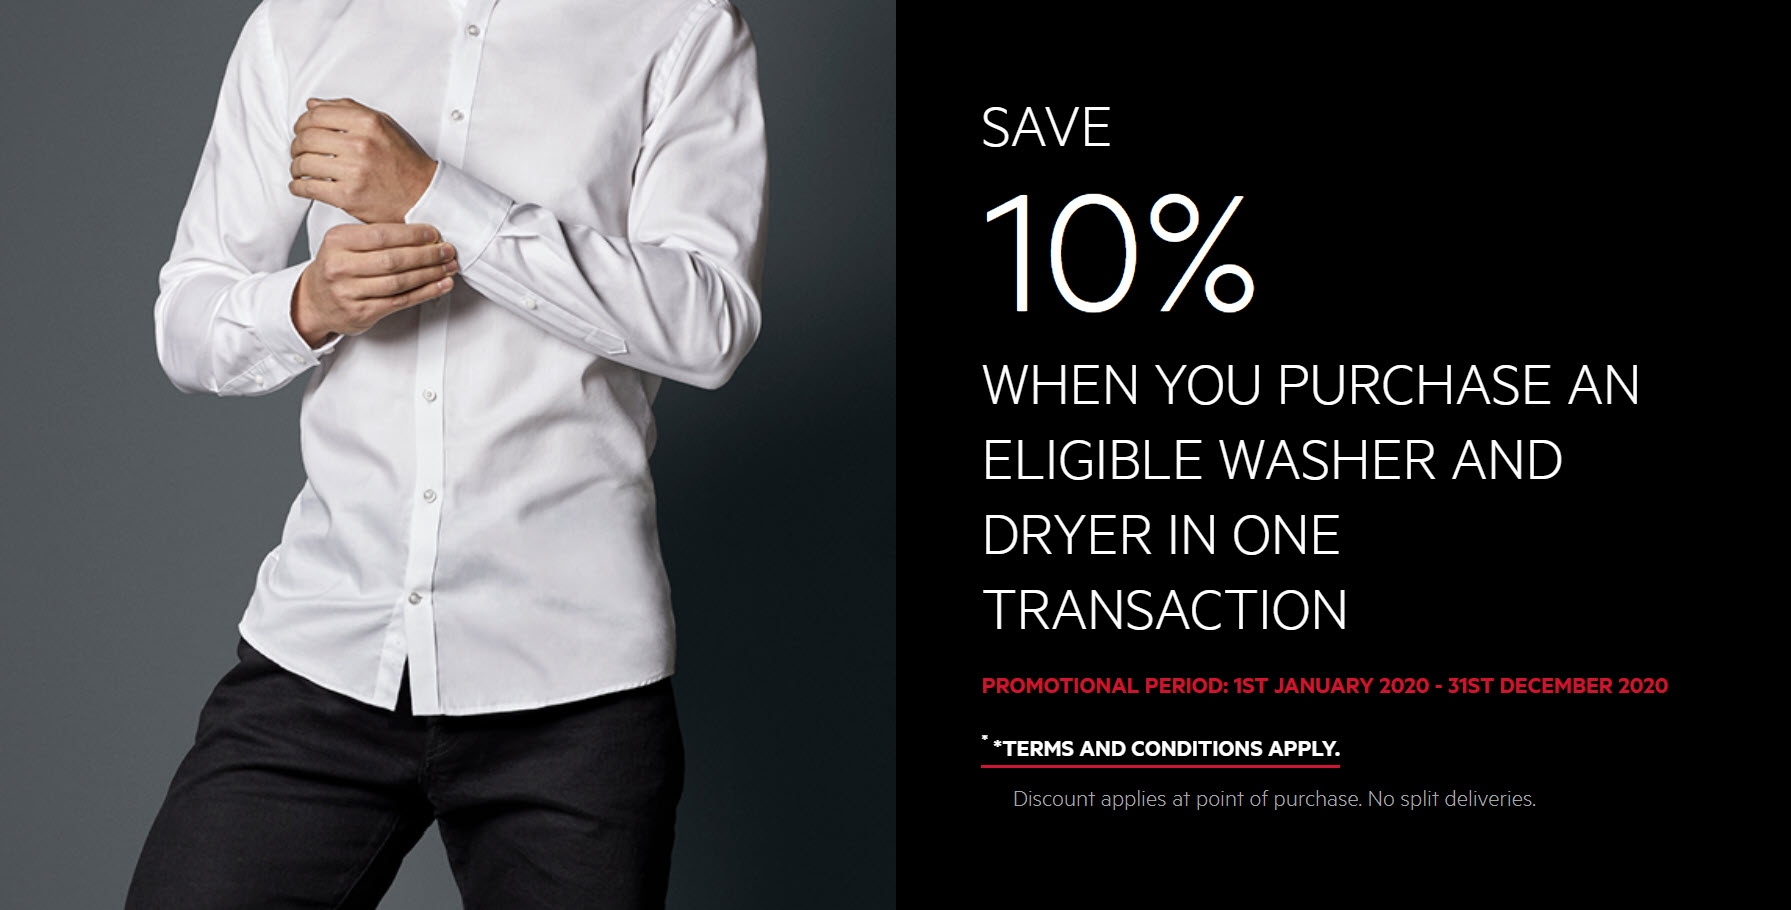 AEG SAVE 10% WHEN YOU PURCHASE AN ELIGIBLE WASHER AND DRYER